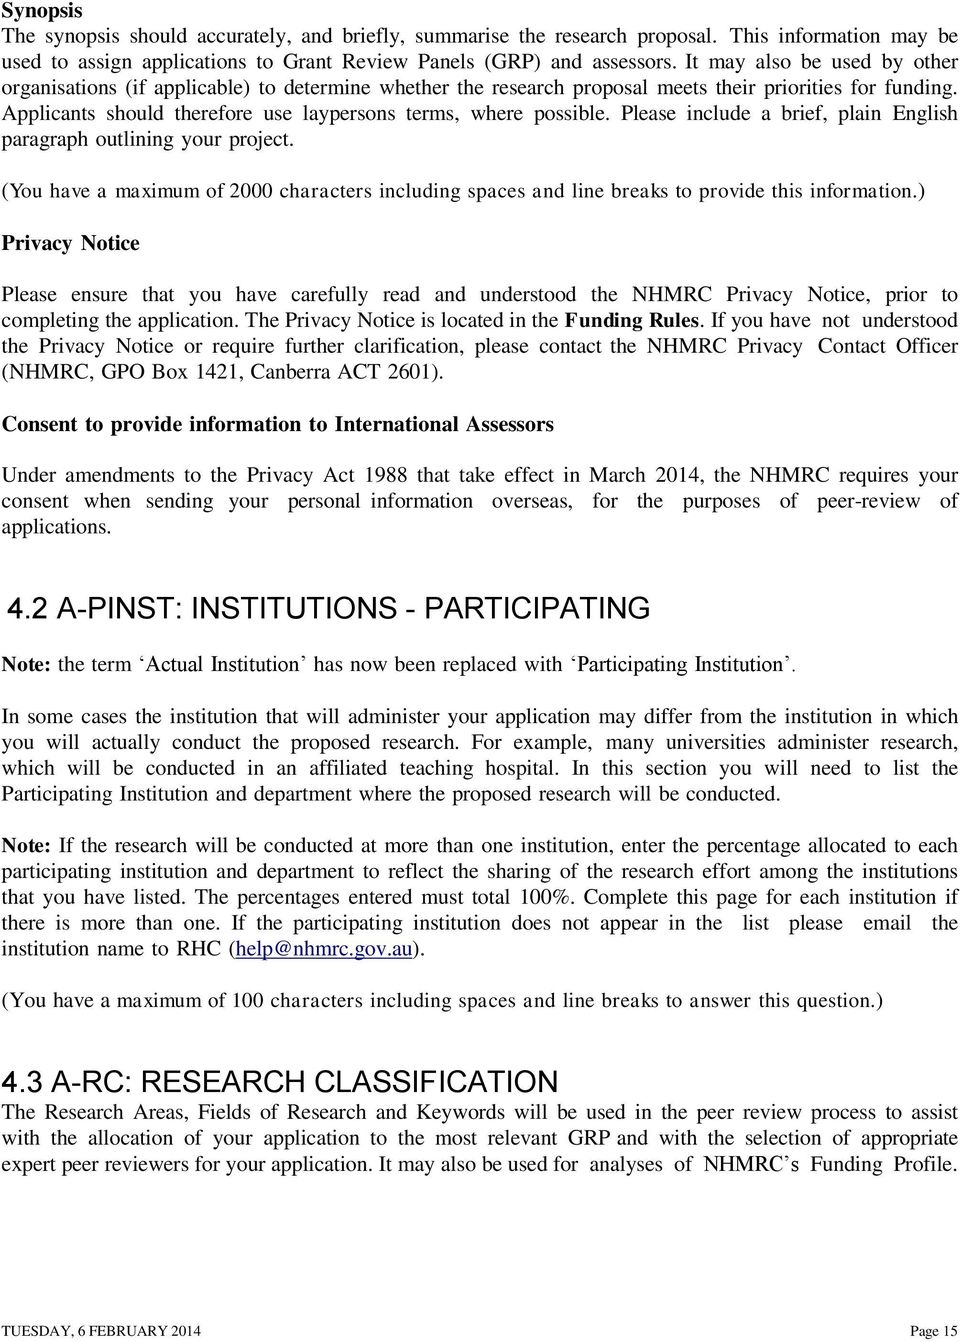 nhmrc research proposal template